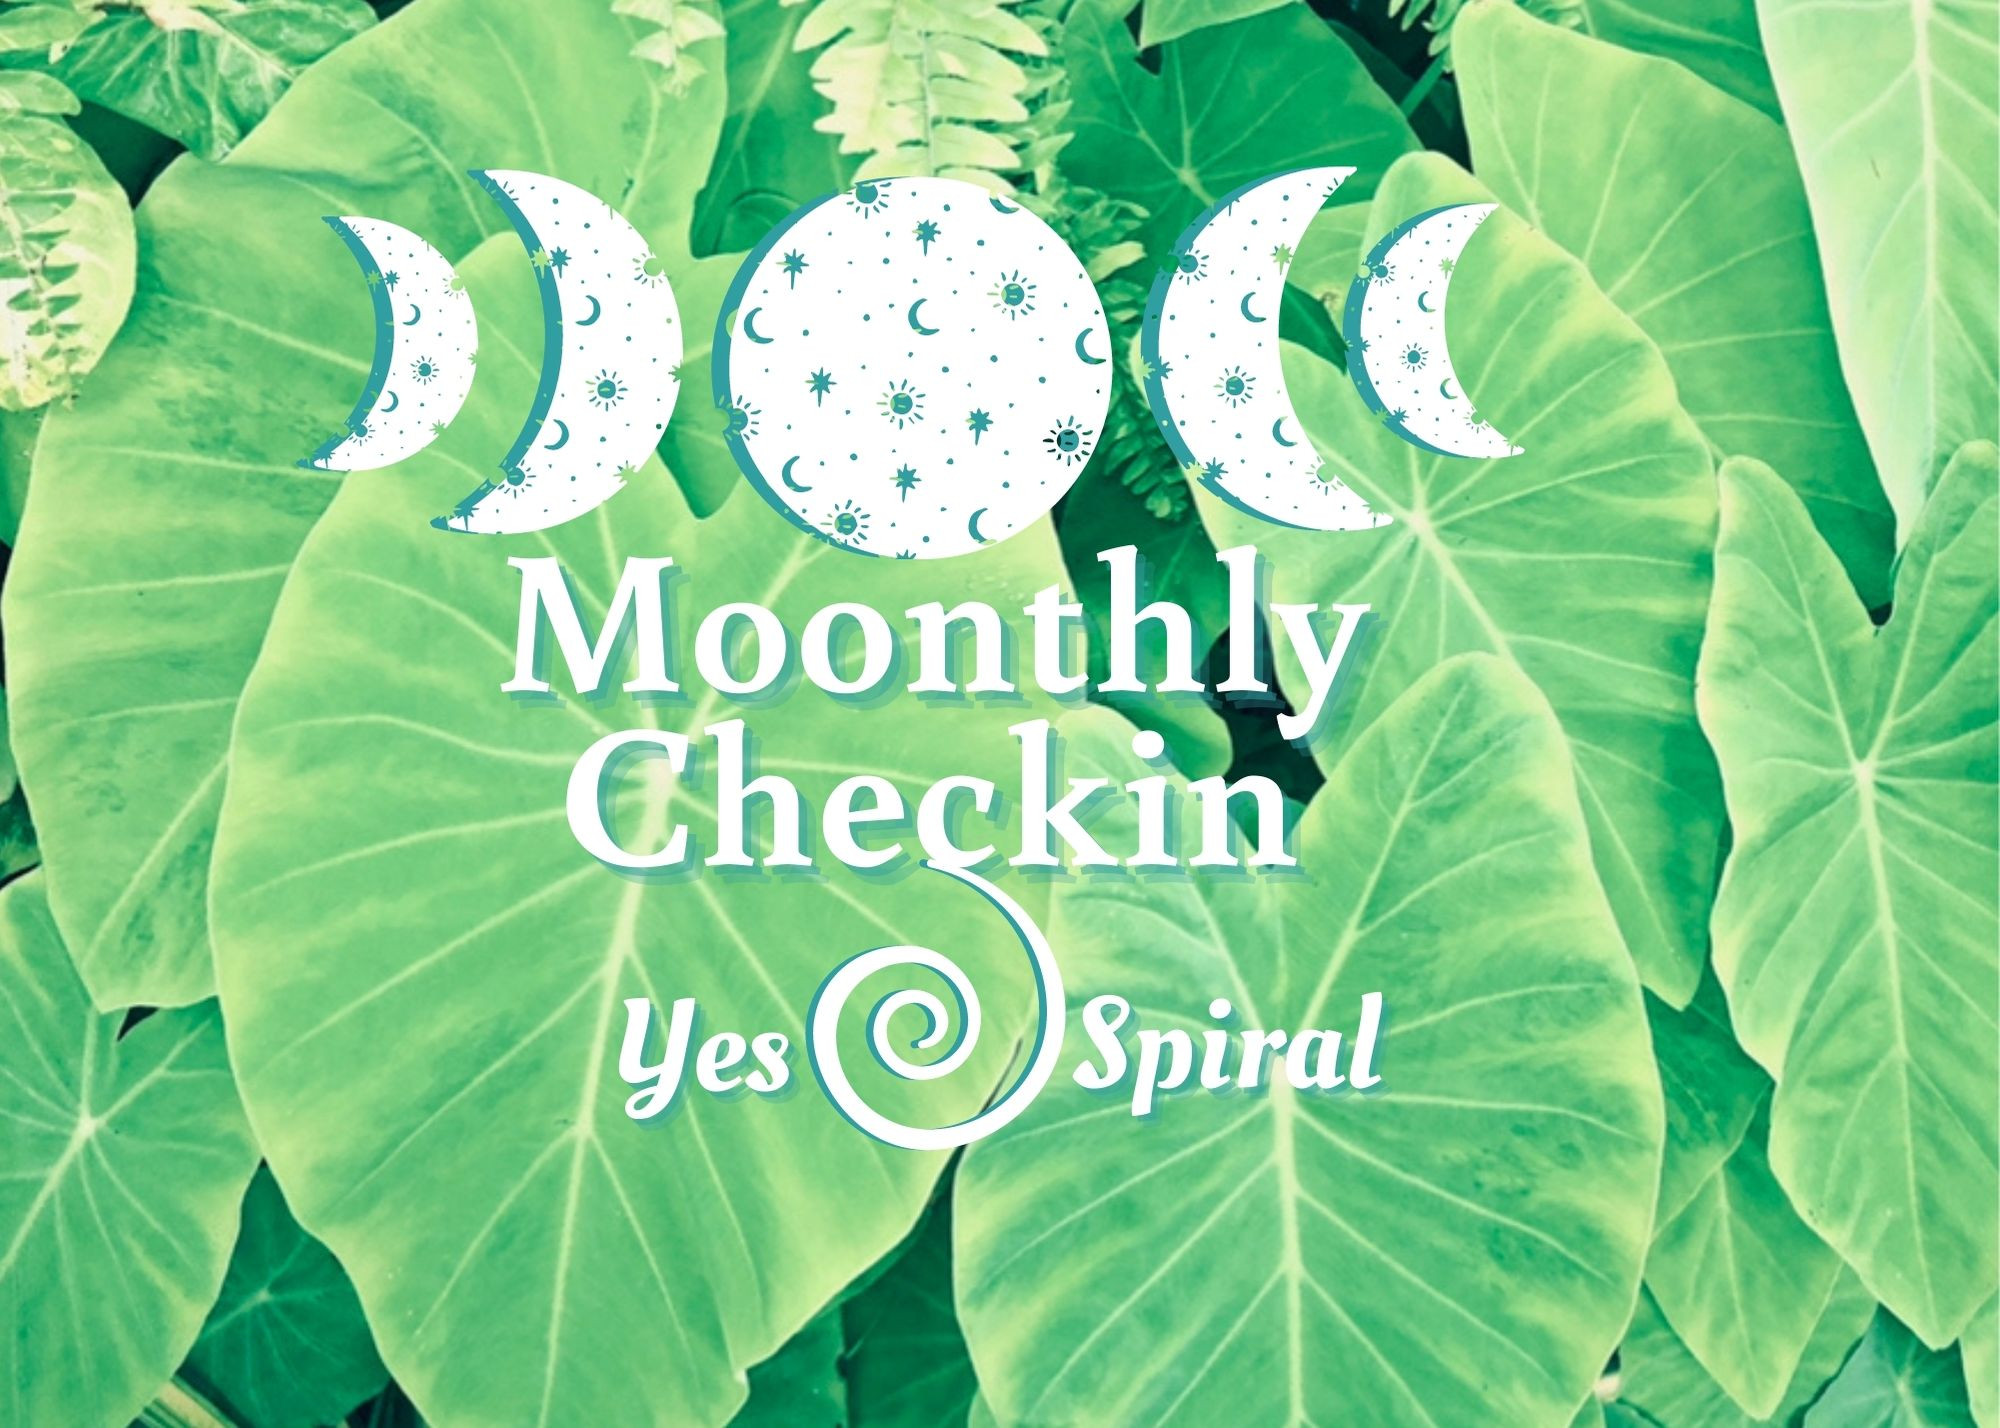 30 Minute Moonthly 1 on 1 Check In